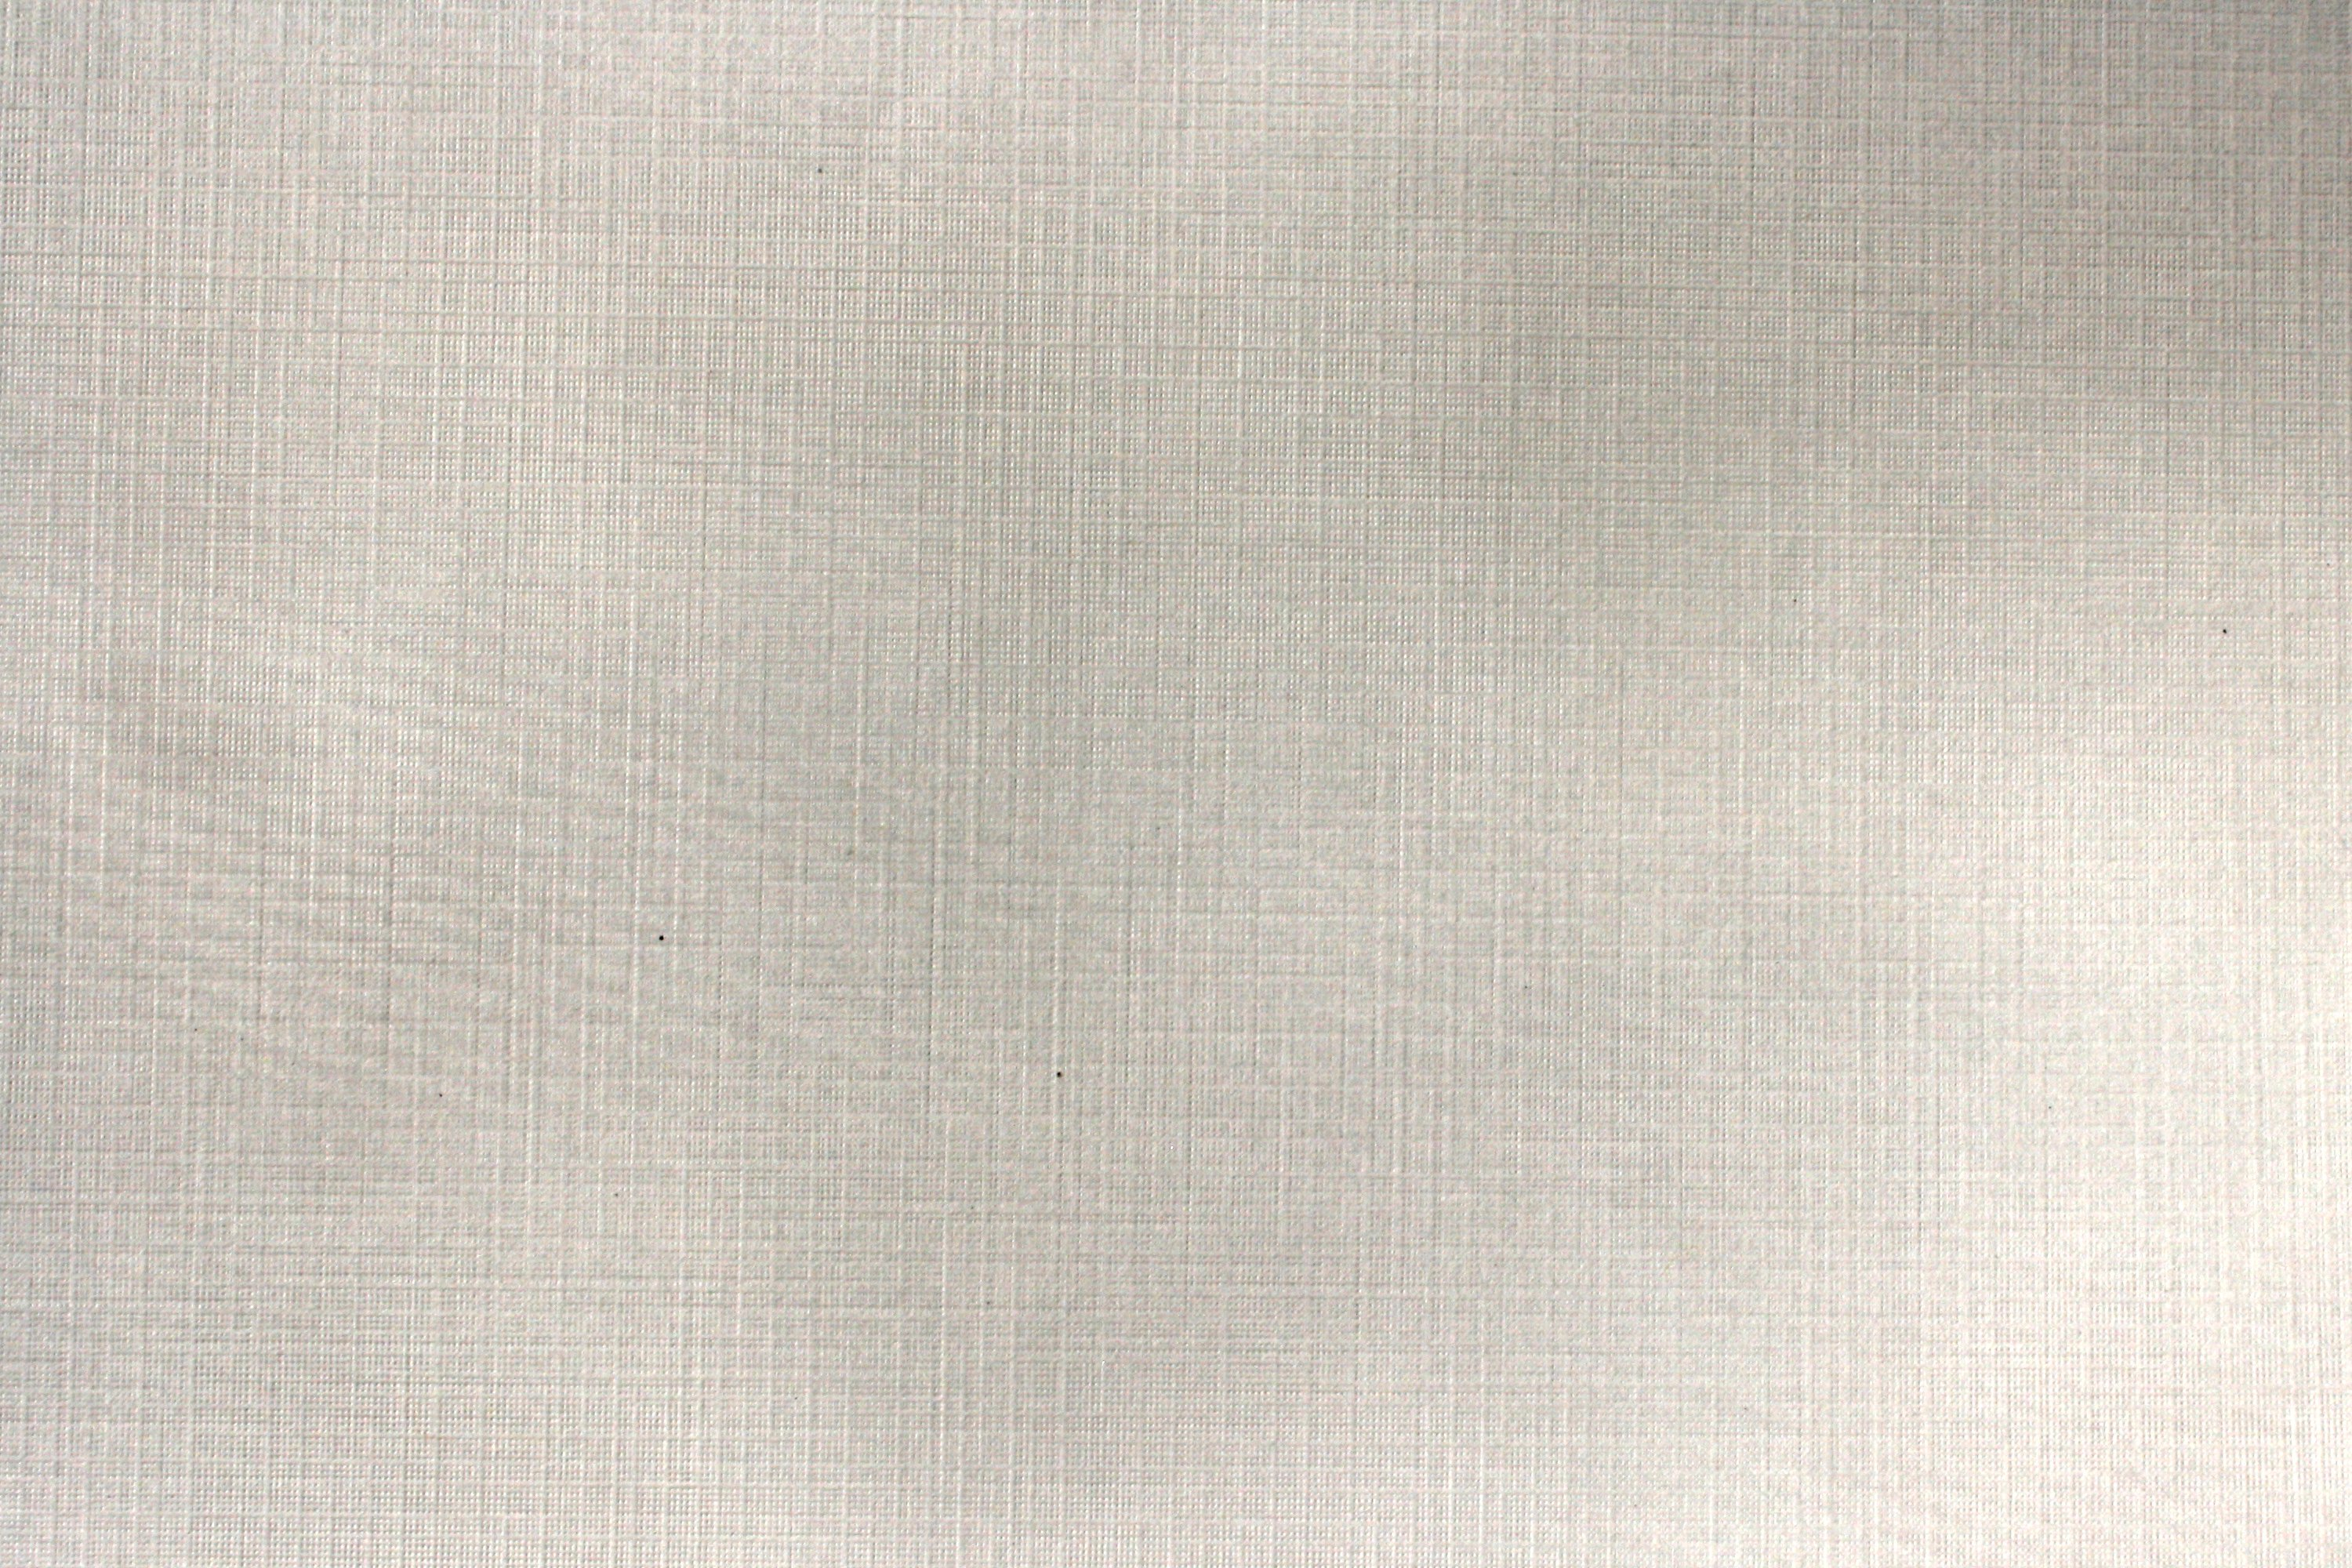 Gray Linen Paper Texture Picture Free Photograph